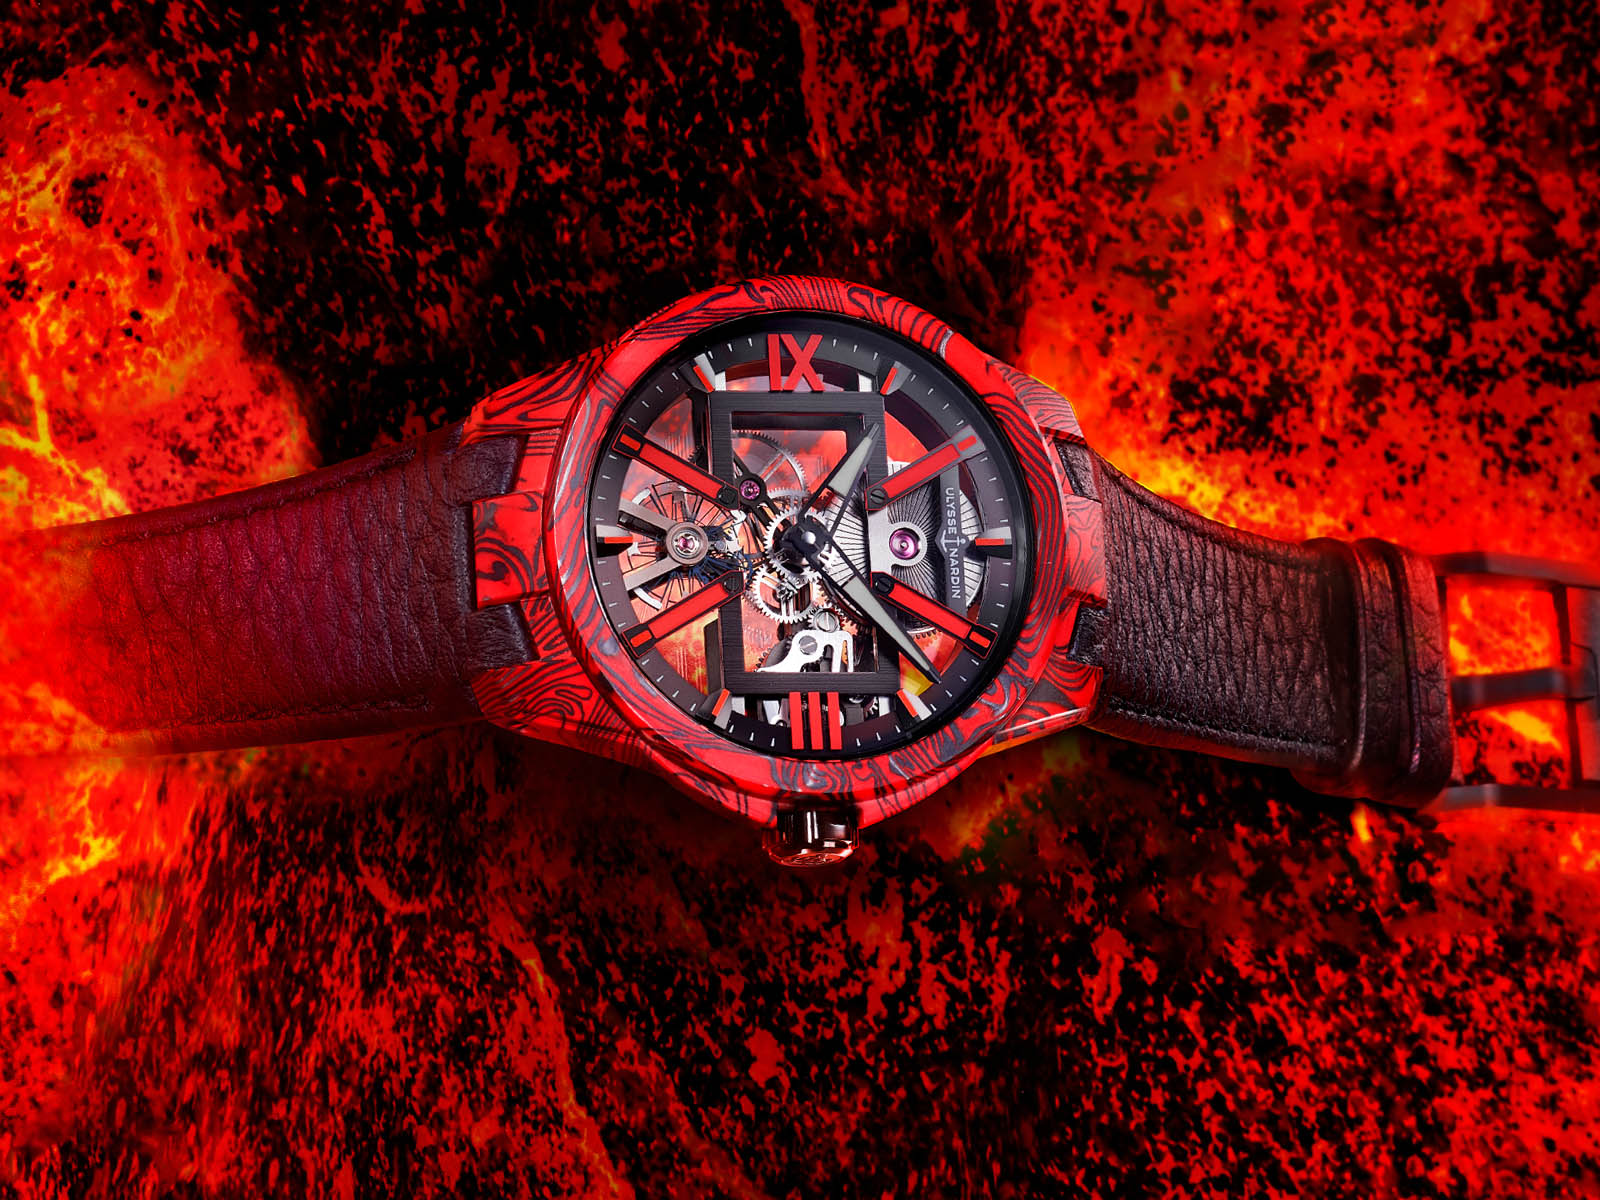 3713-260-magma-ulysse-nardin-executive-skeleton-x-magma-4.jpg